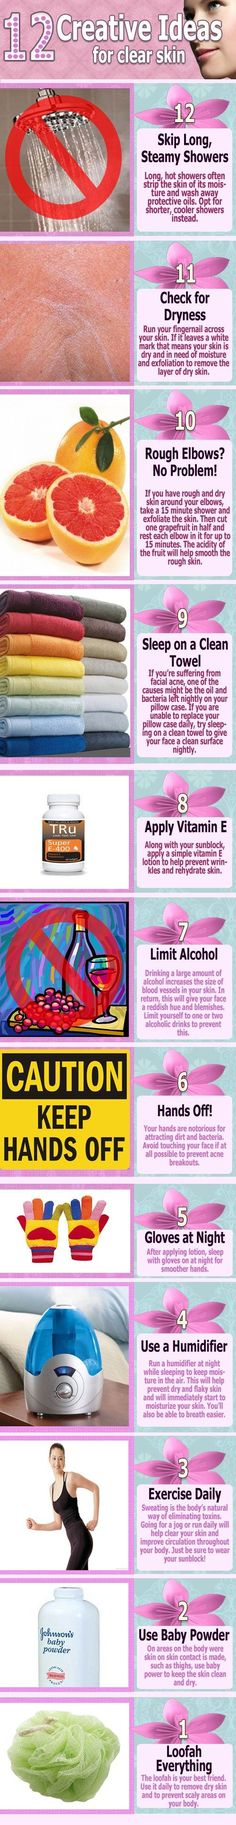 Get clear skin   #skincare #healthyskin    http://www.atalskinsolutions.com/